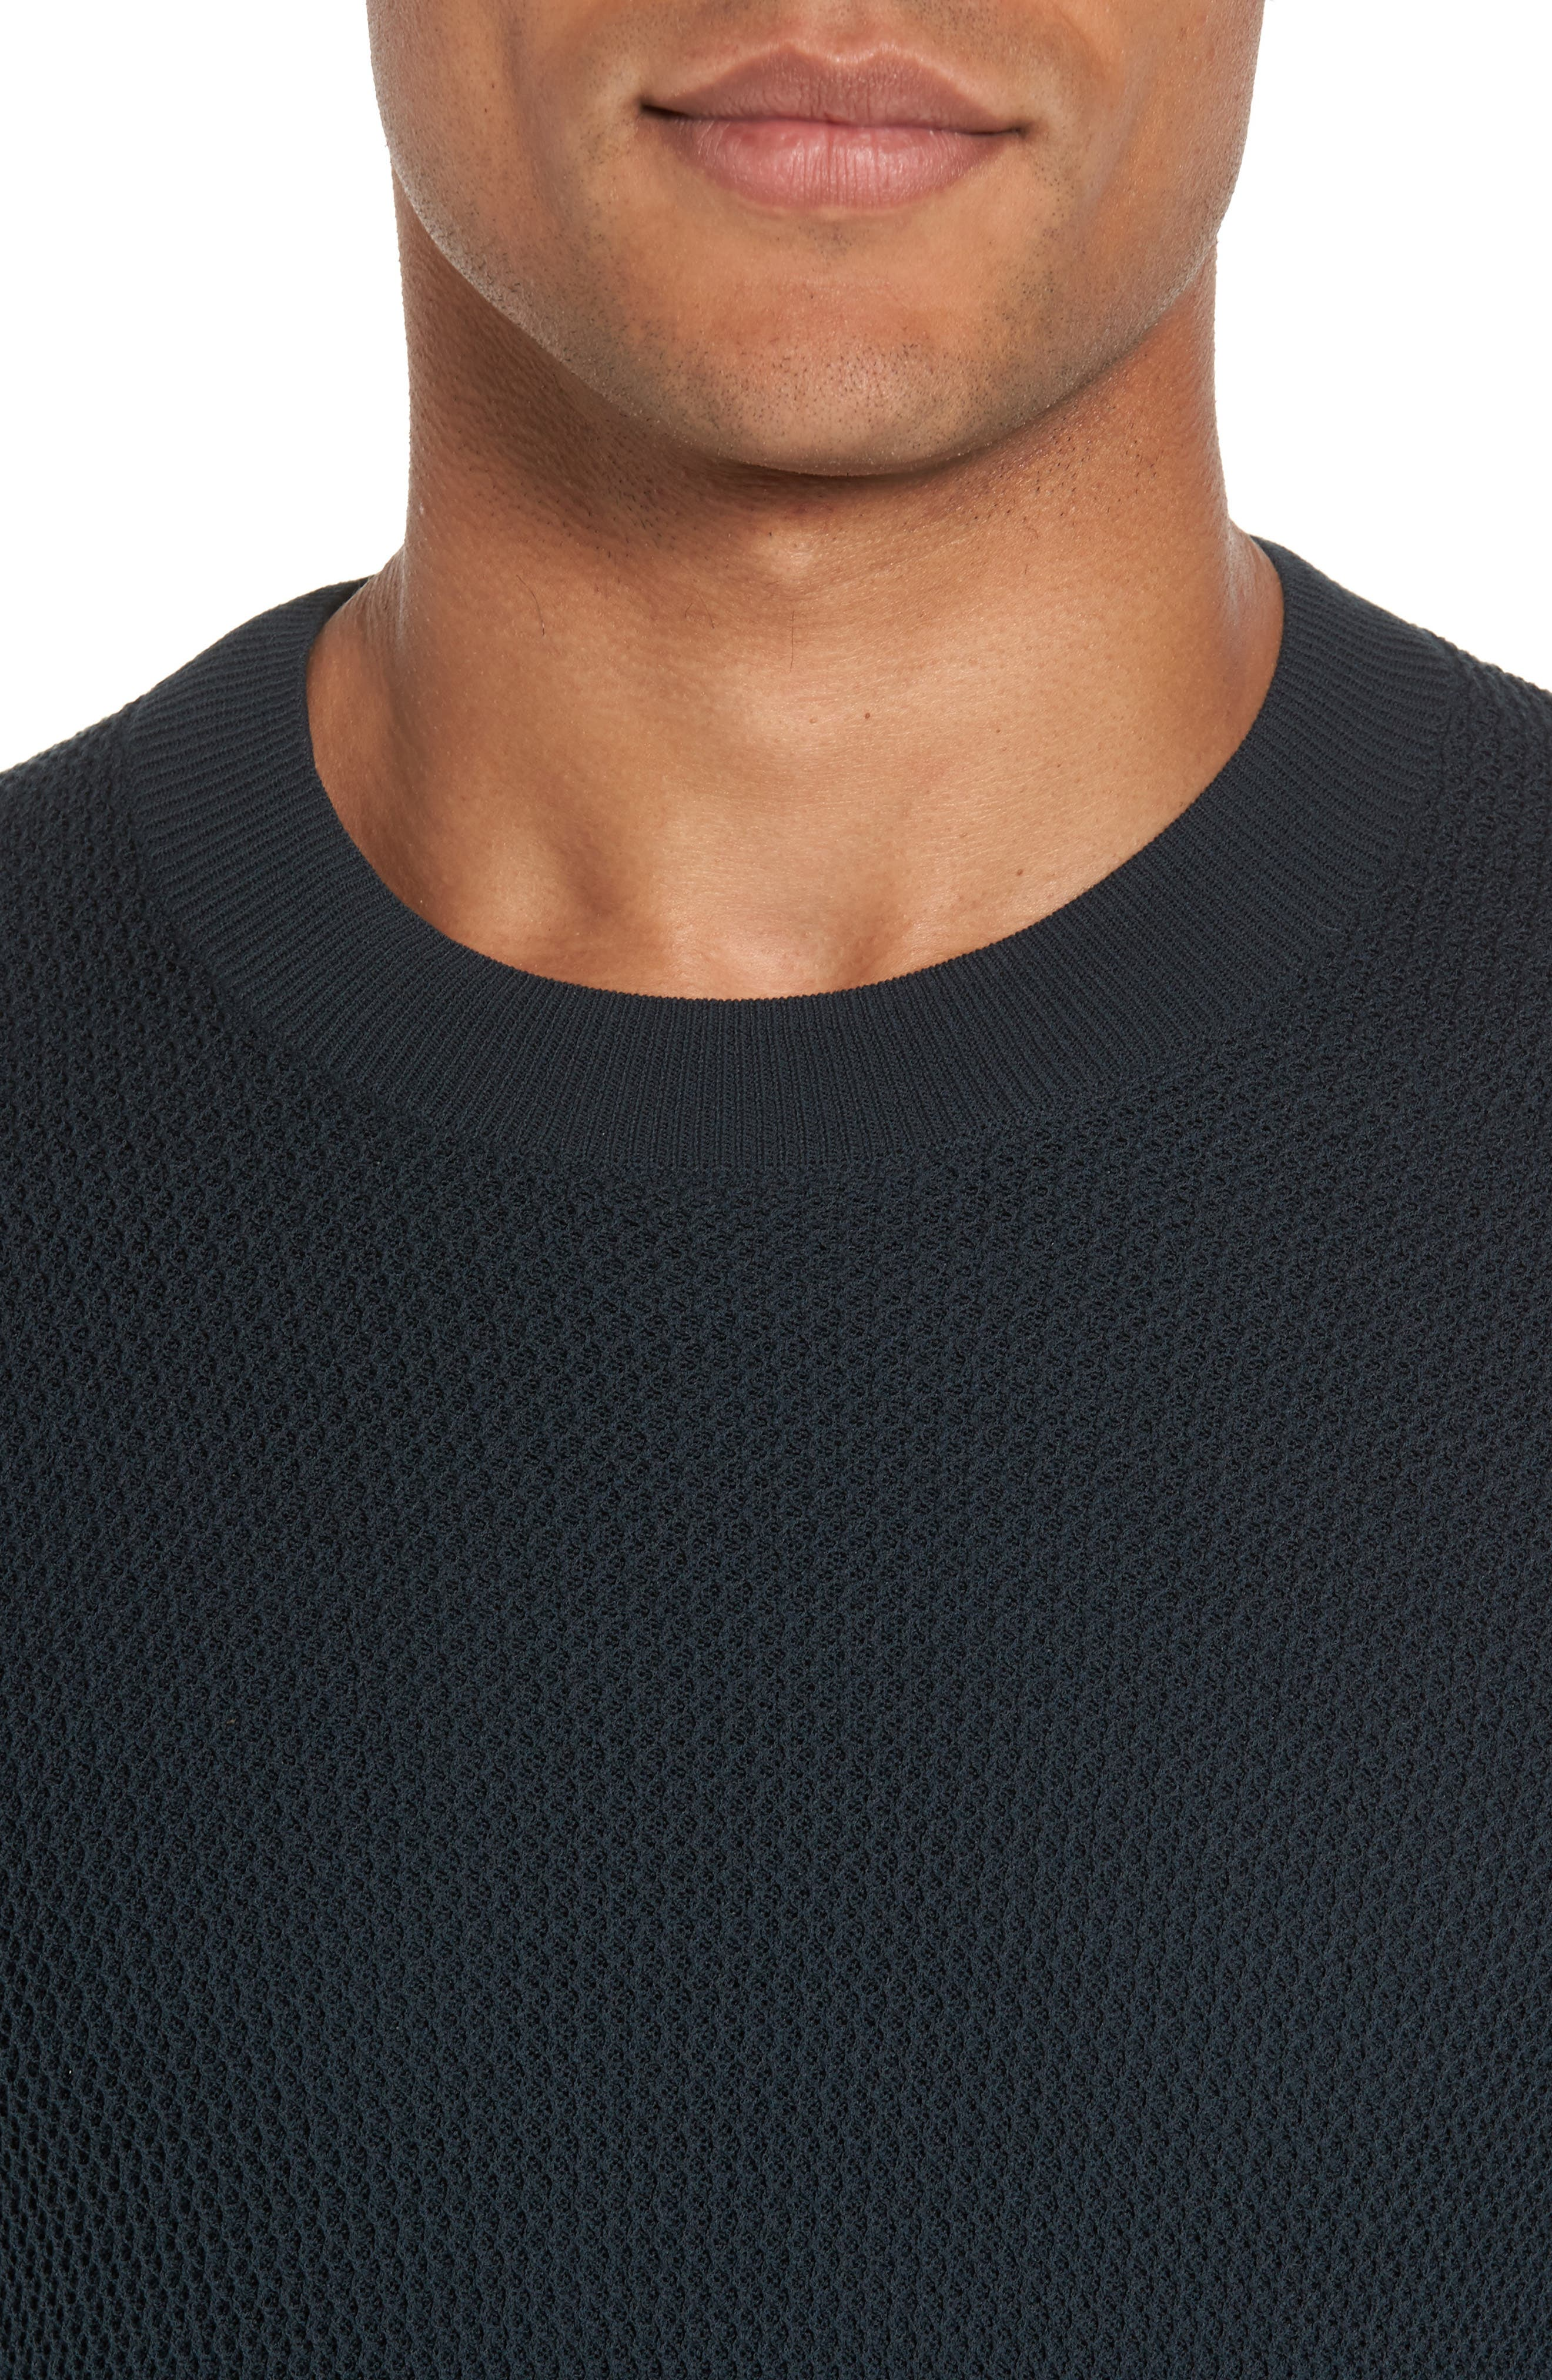 Mesh Crewneck Sweater,                             Alternate thumbnail 4, color,                             Midnight Forest